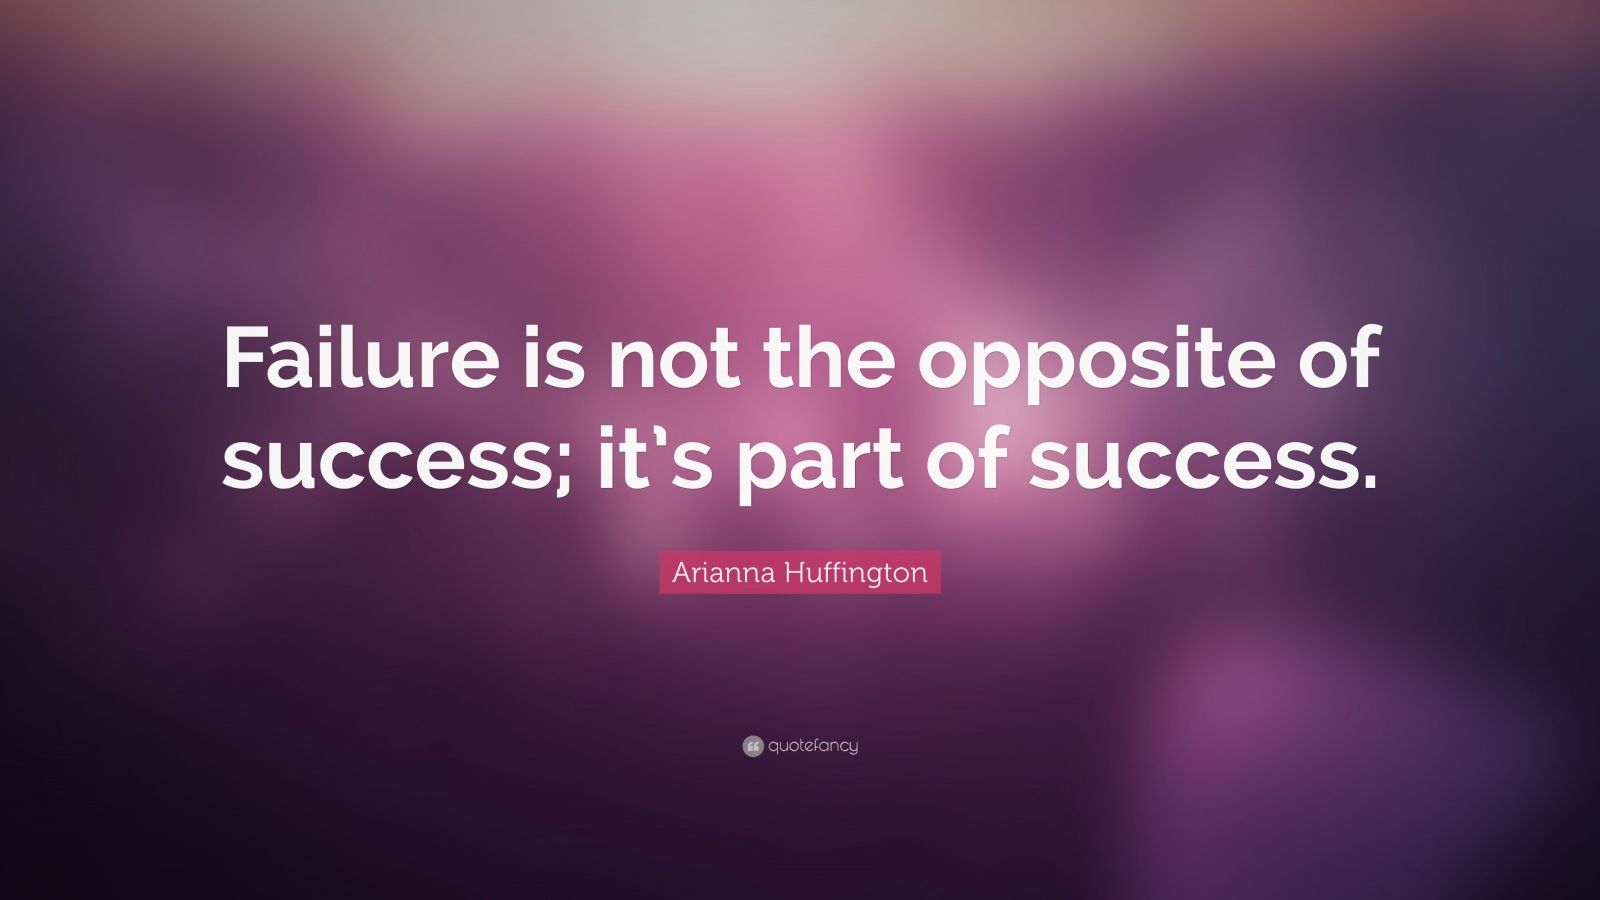 Quotes On Success Wallpapers Arianna Huffington Quote Failure Is Not The Opposite Of